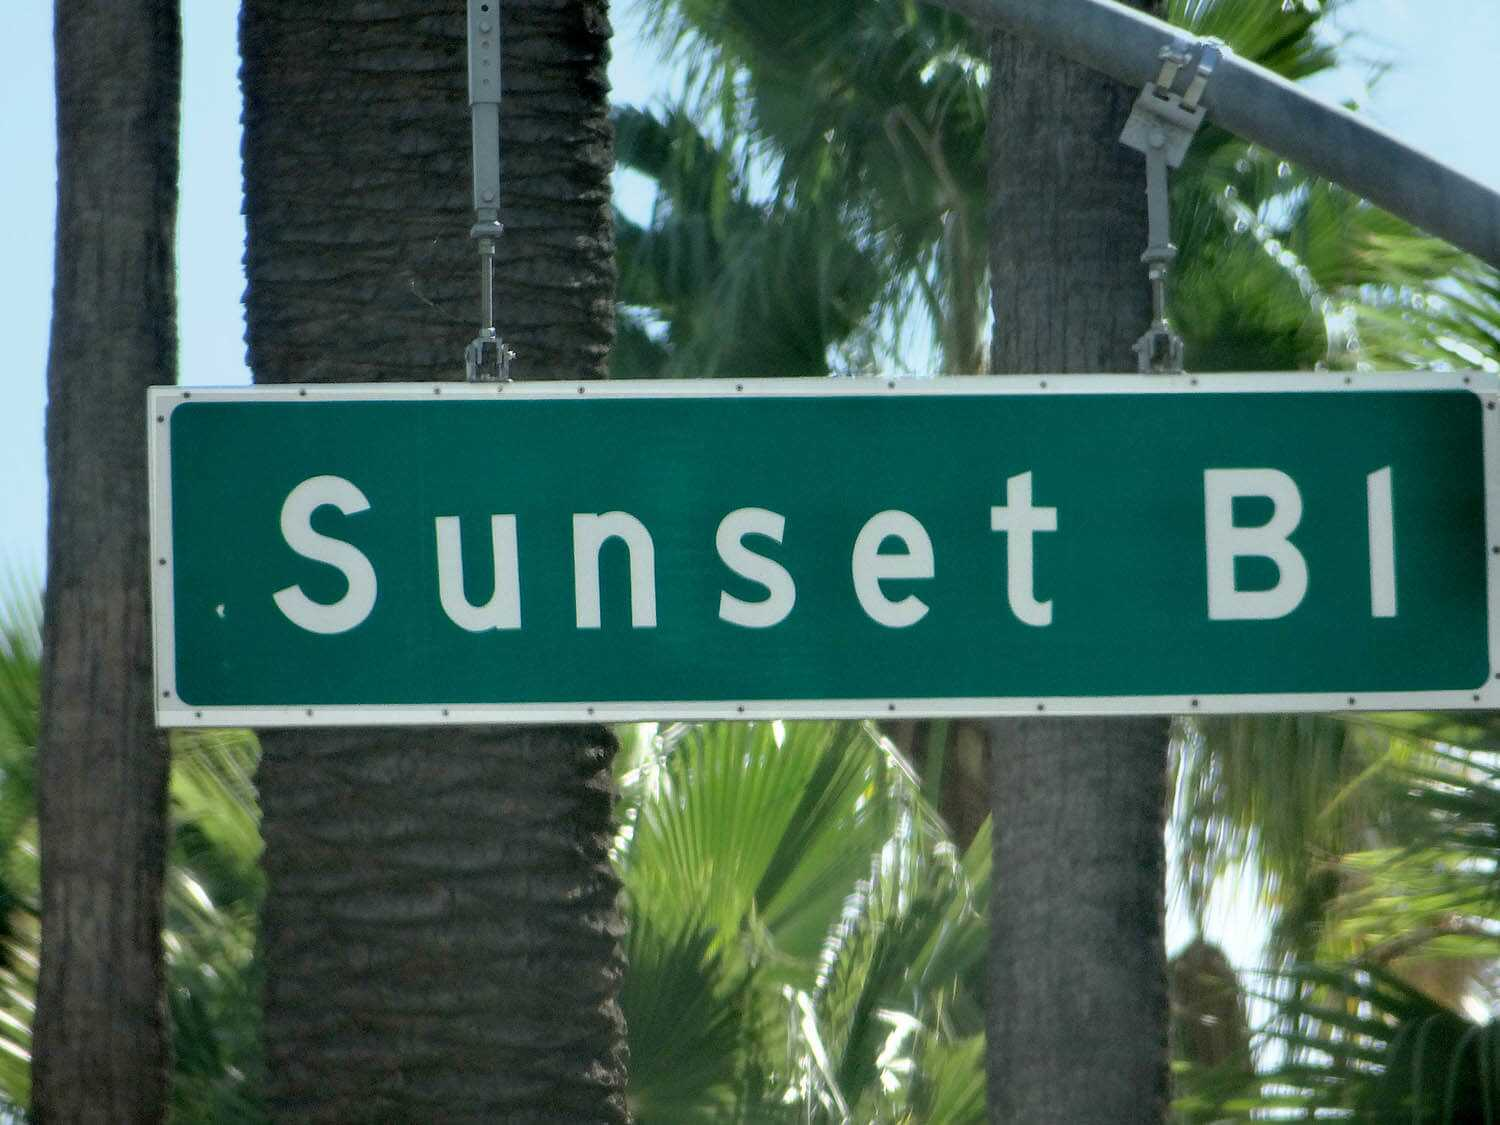 005-sunsetblvd_plus